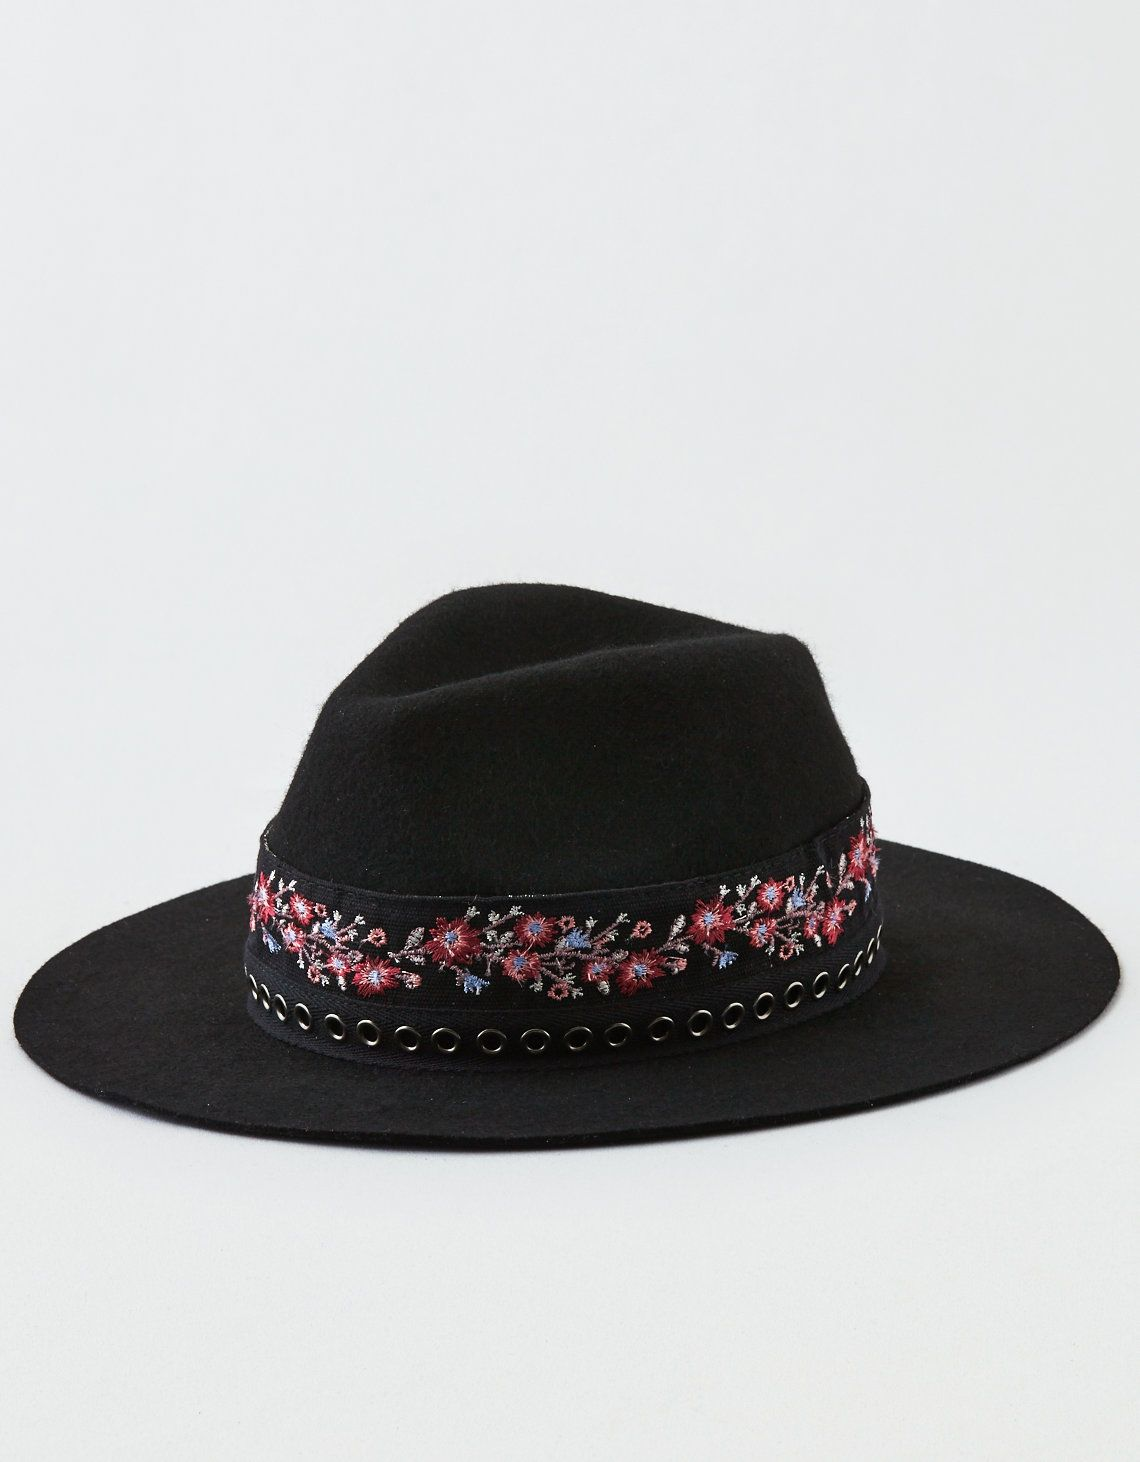 927aeef7 Product Image | Thirteen in 2019 | Hats, Western hats, Mens outfitters